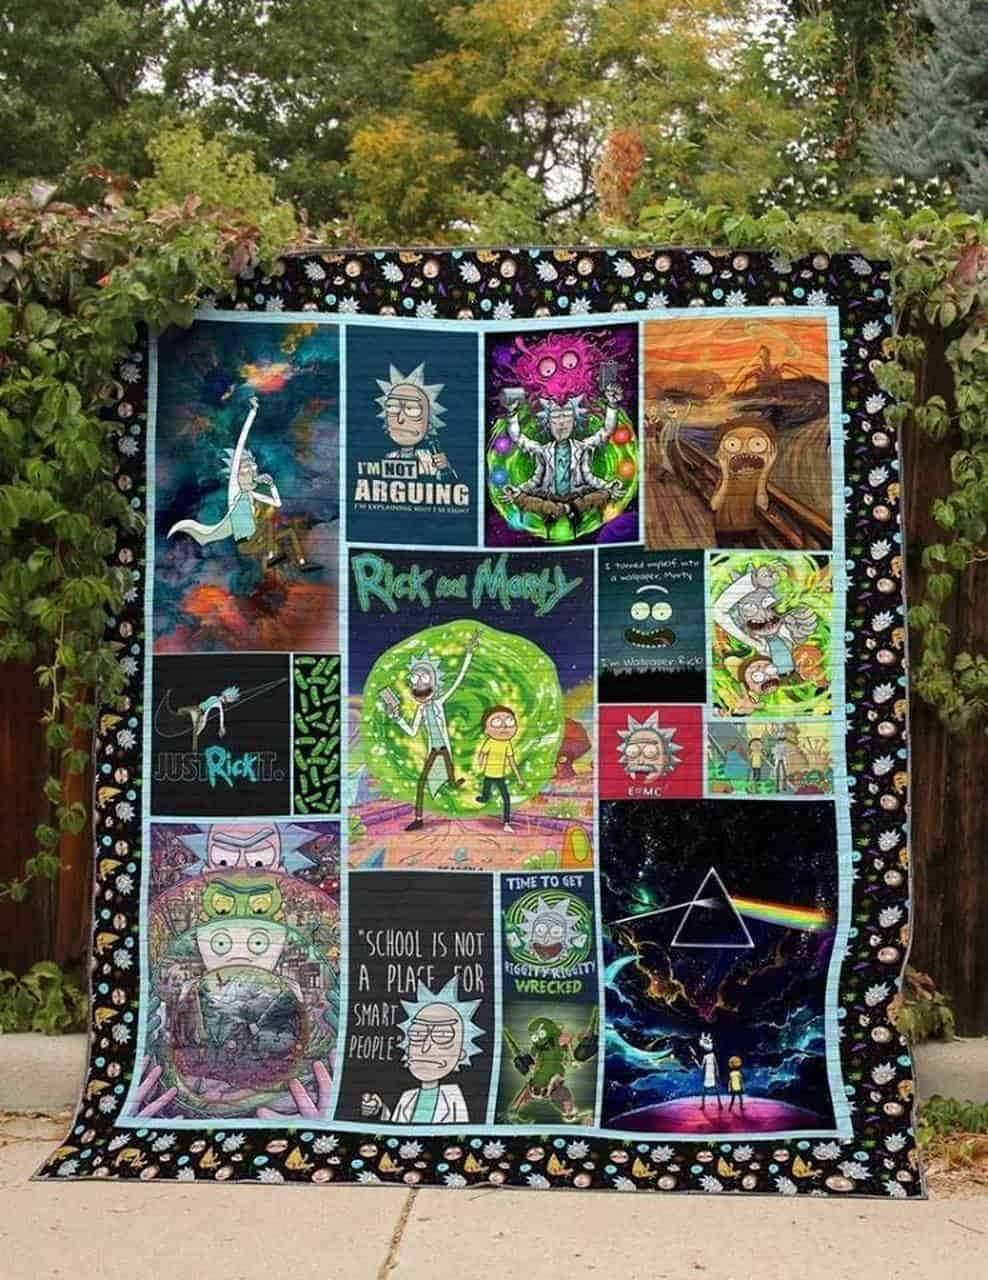 Rick and morty blanket - king